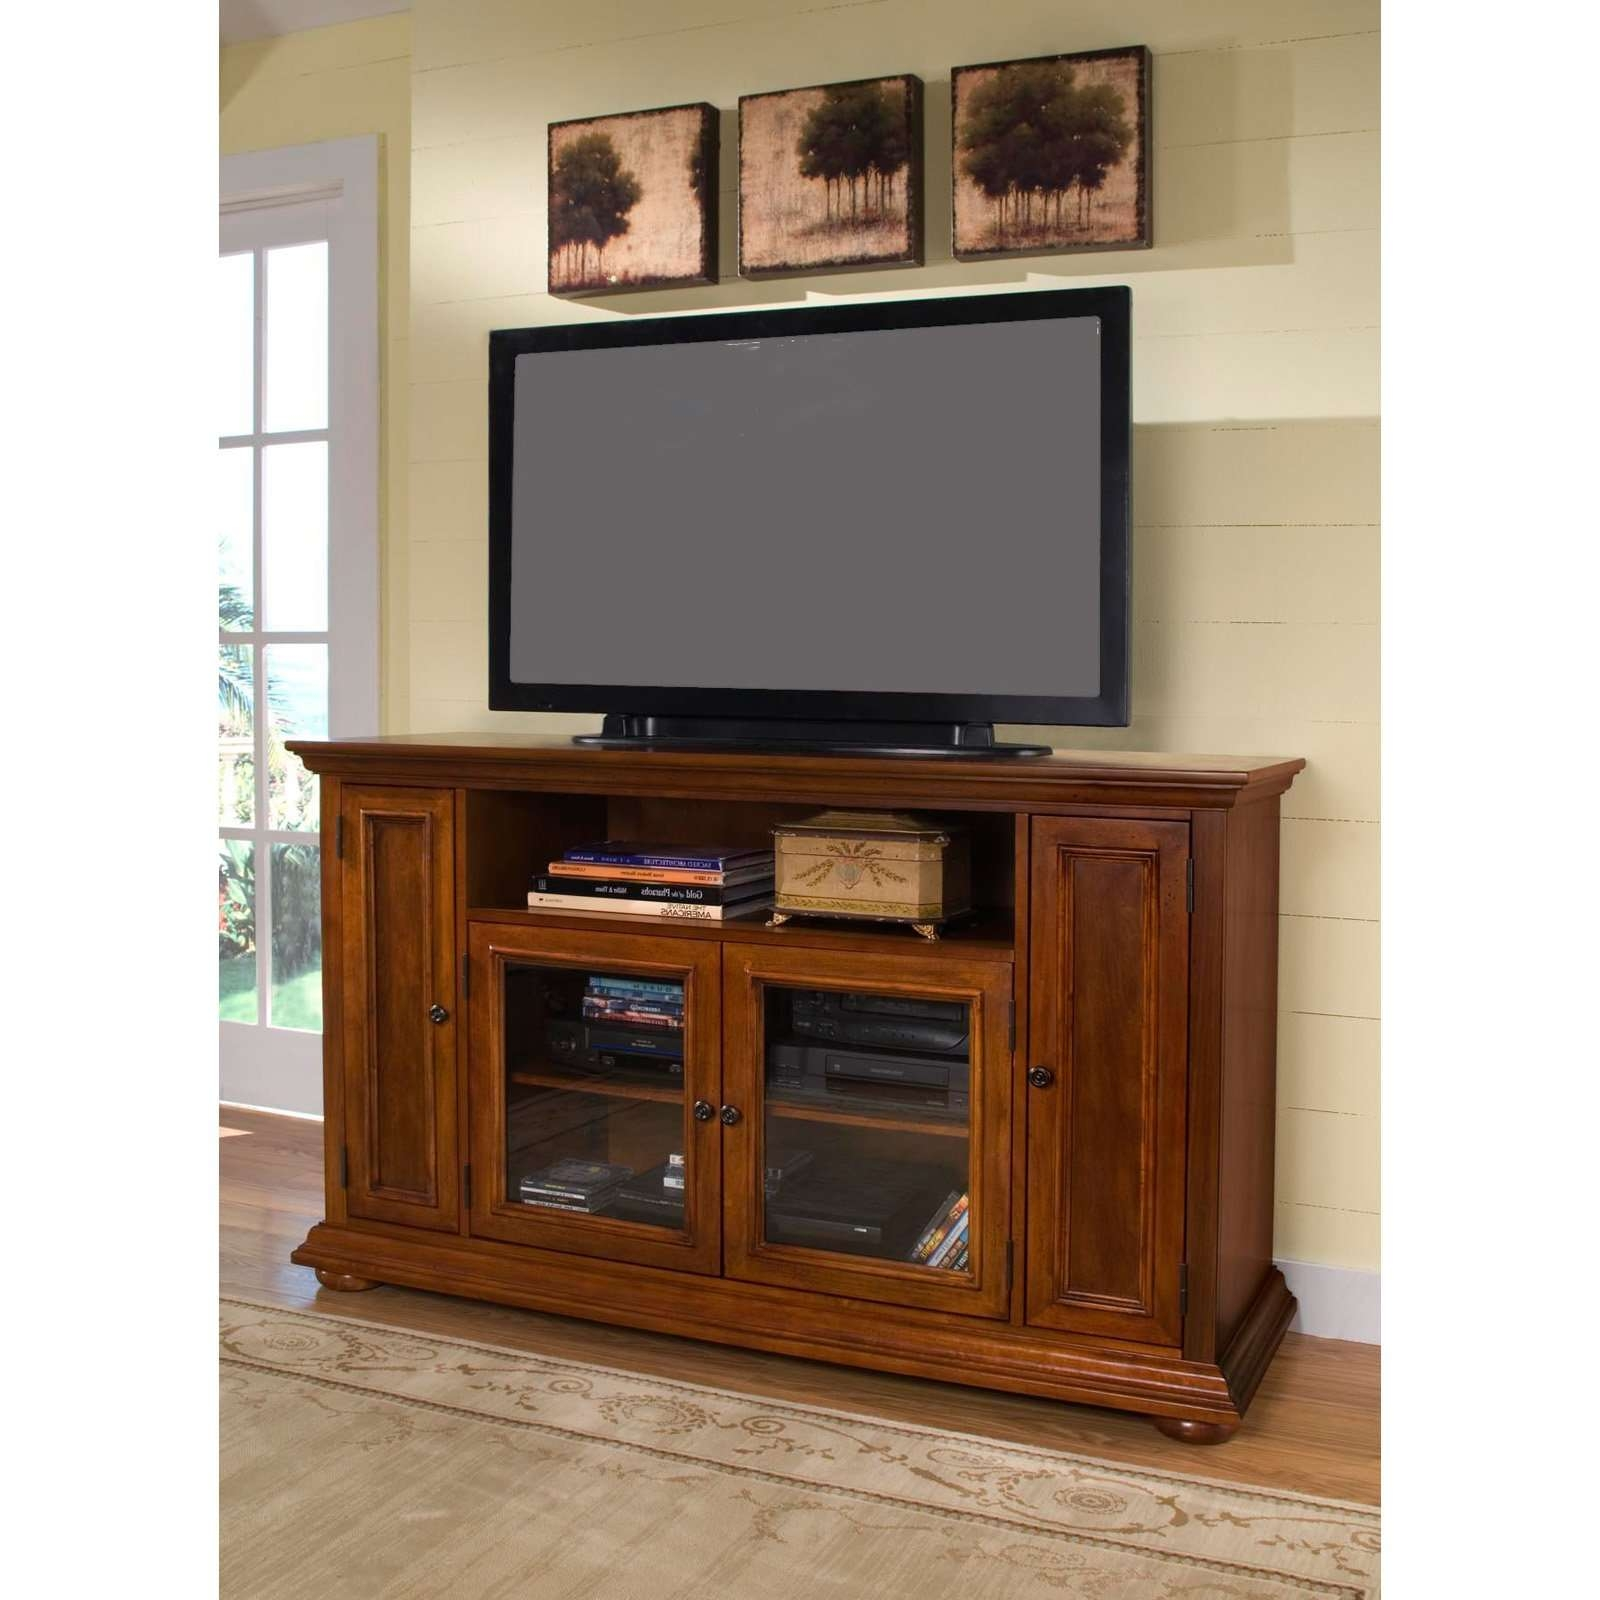 Home Decor: Marvelous Wood Tv Stands For Flat Screens Plus Light With Regard To Light Oak Tv Stands Flat Screen (View 5 of 15)